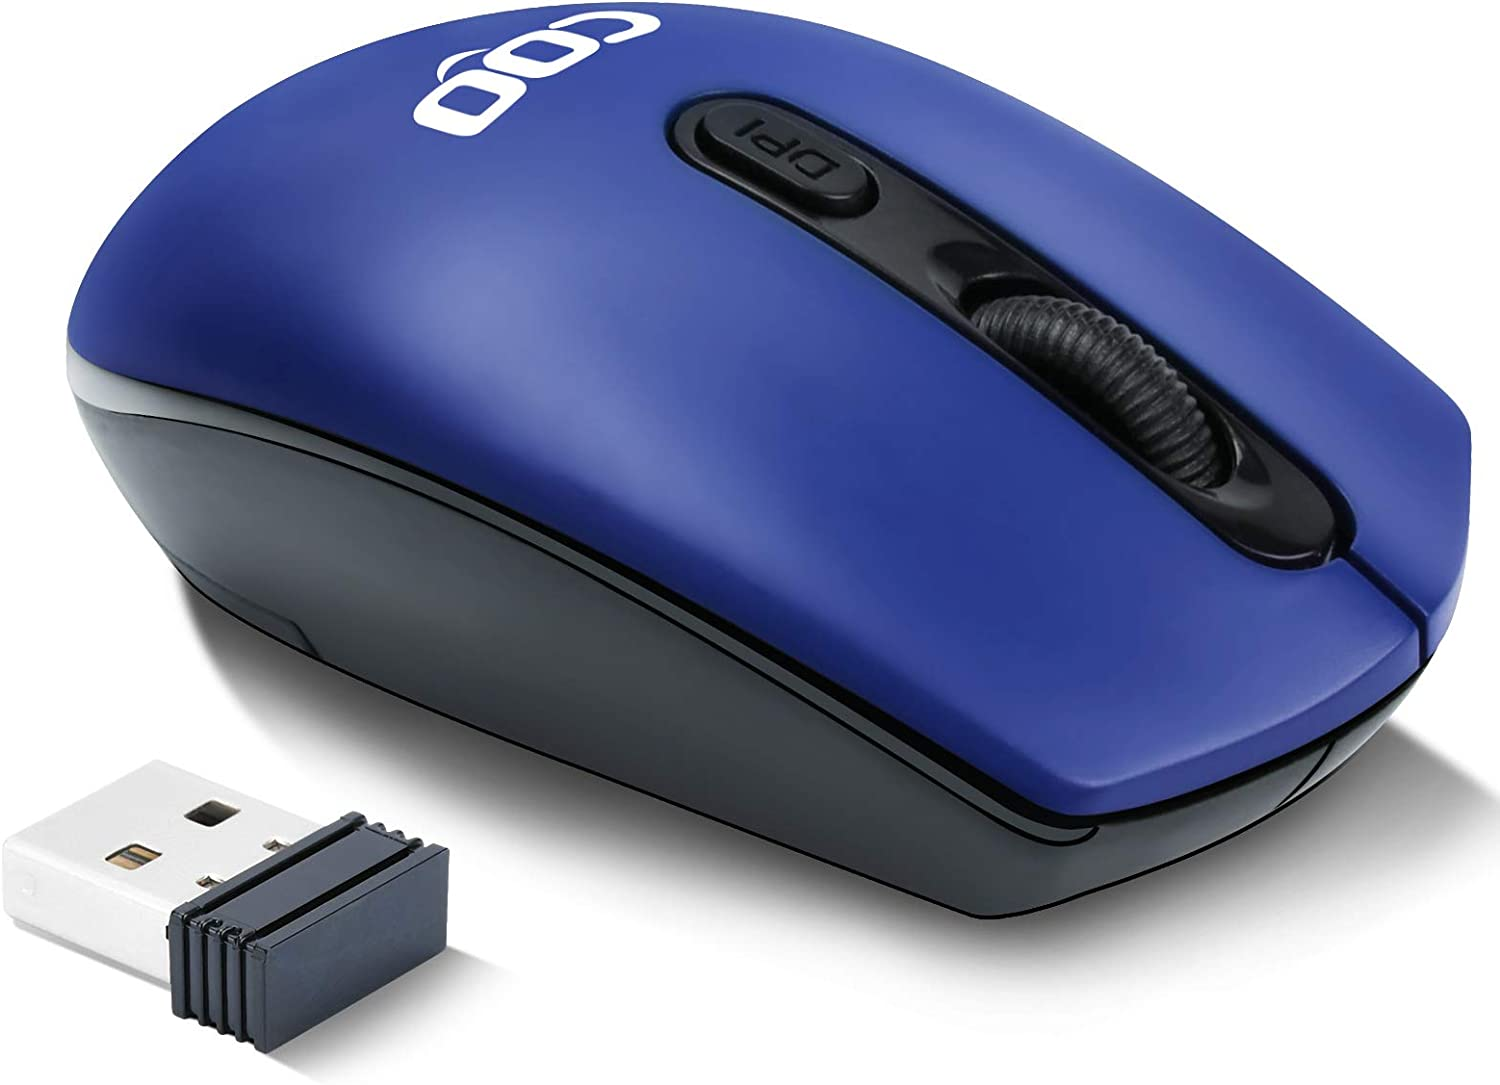 Wireless Computer Mouse,2.4G Wireless Optical Mouse with USB Receiver, Easy Click for Office and Home Mice,3 Adjustable DPI for Notebook, PC, Laptop, Computer, MacBook(Dark Blue)